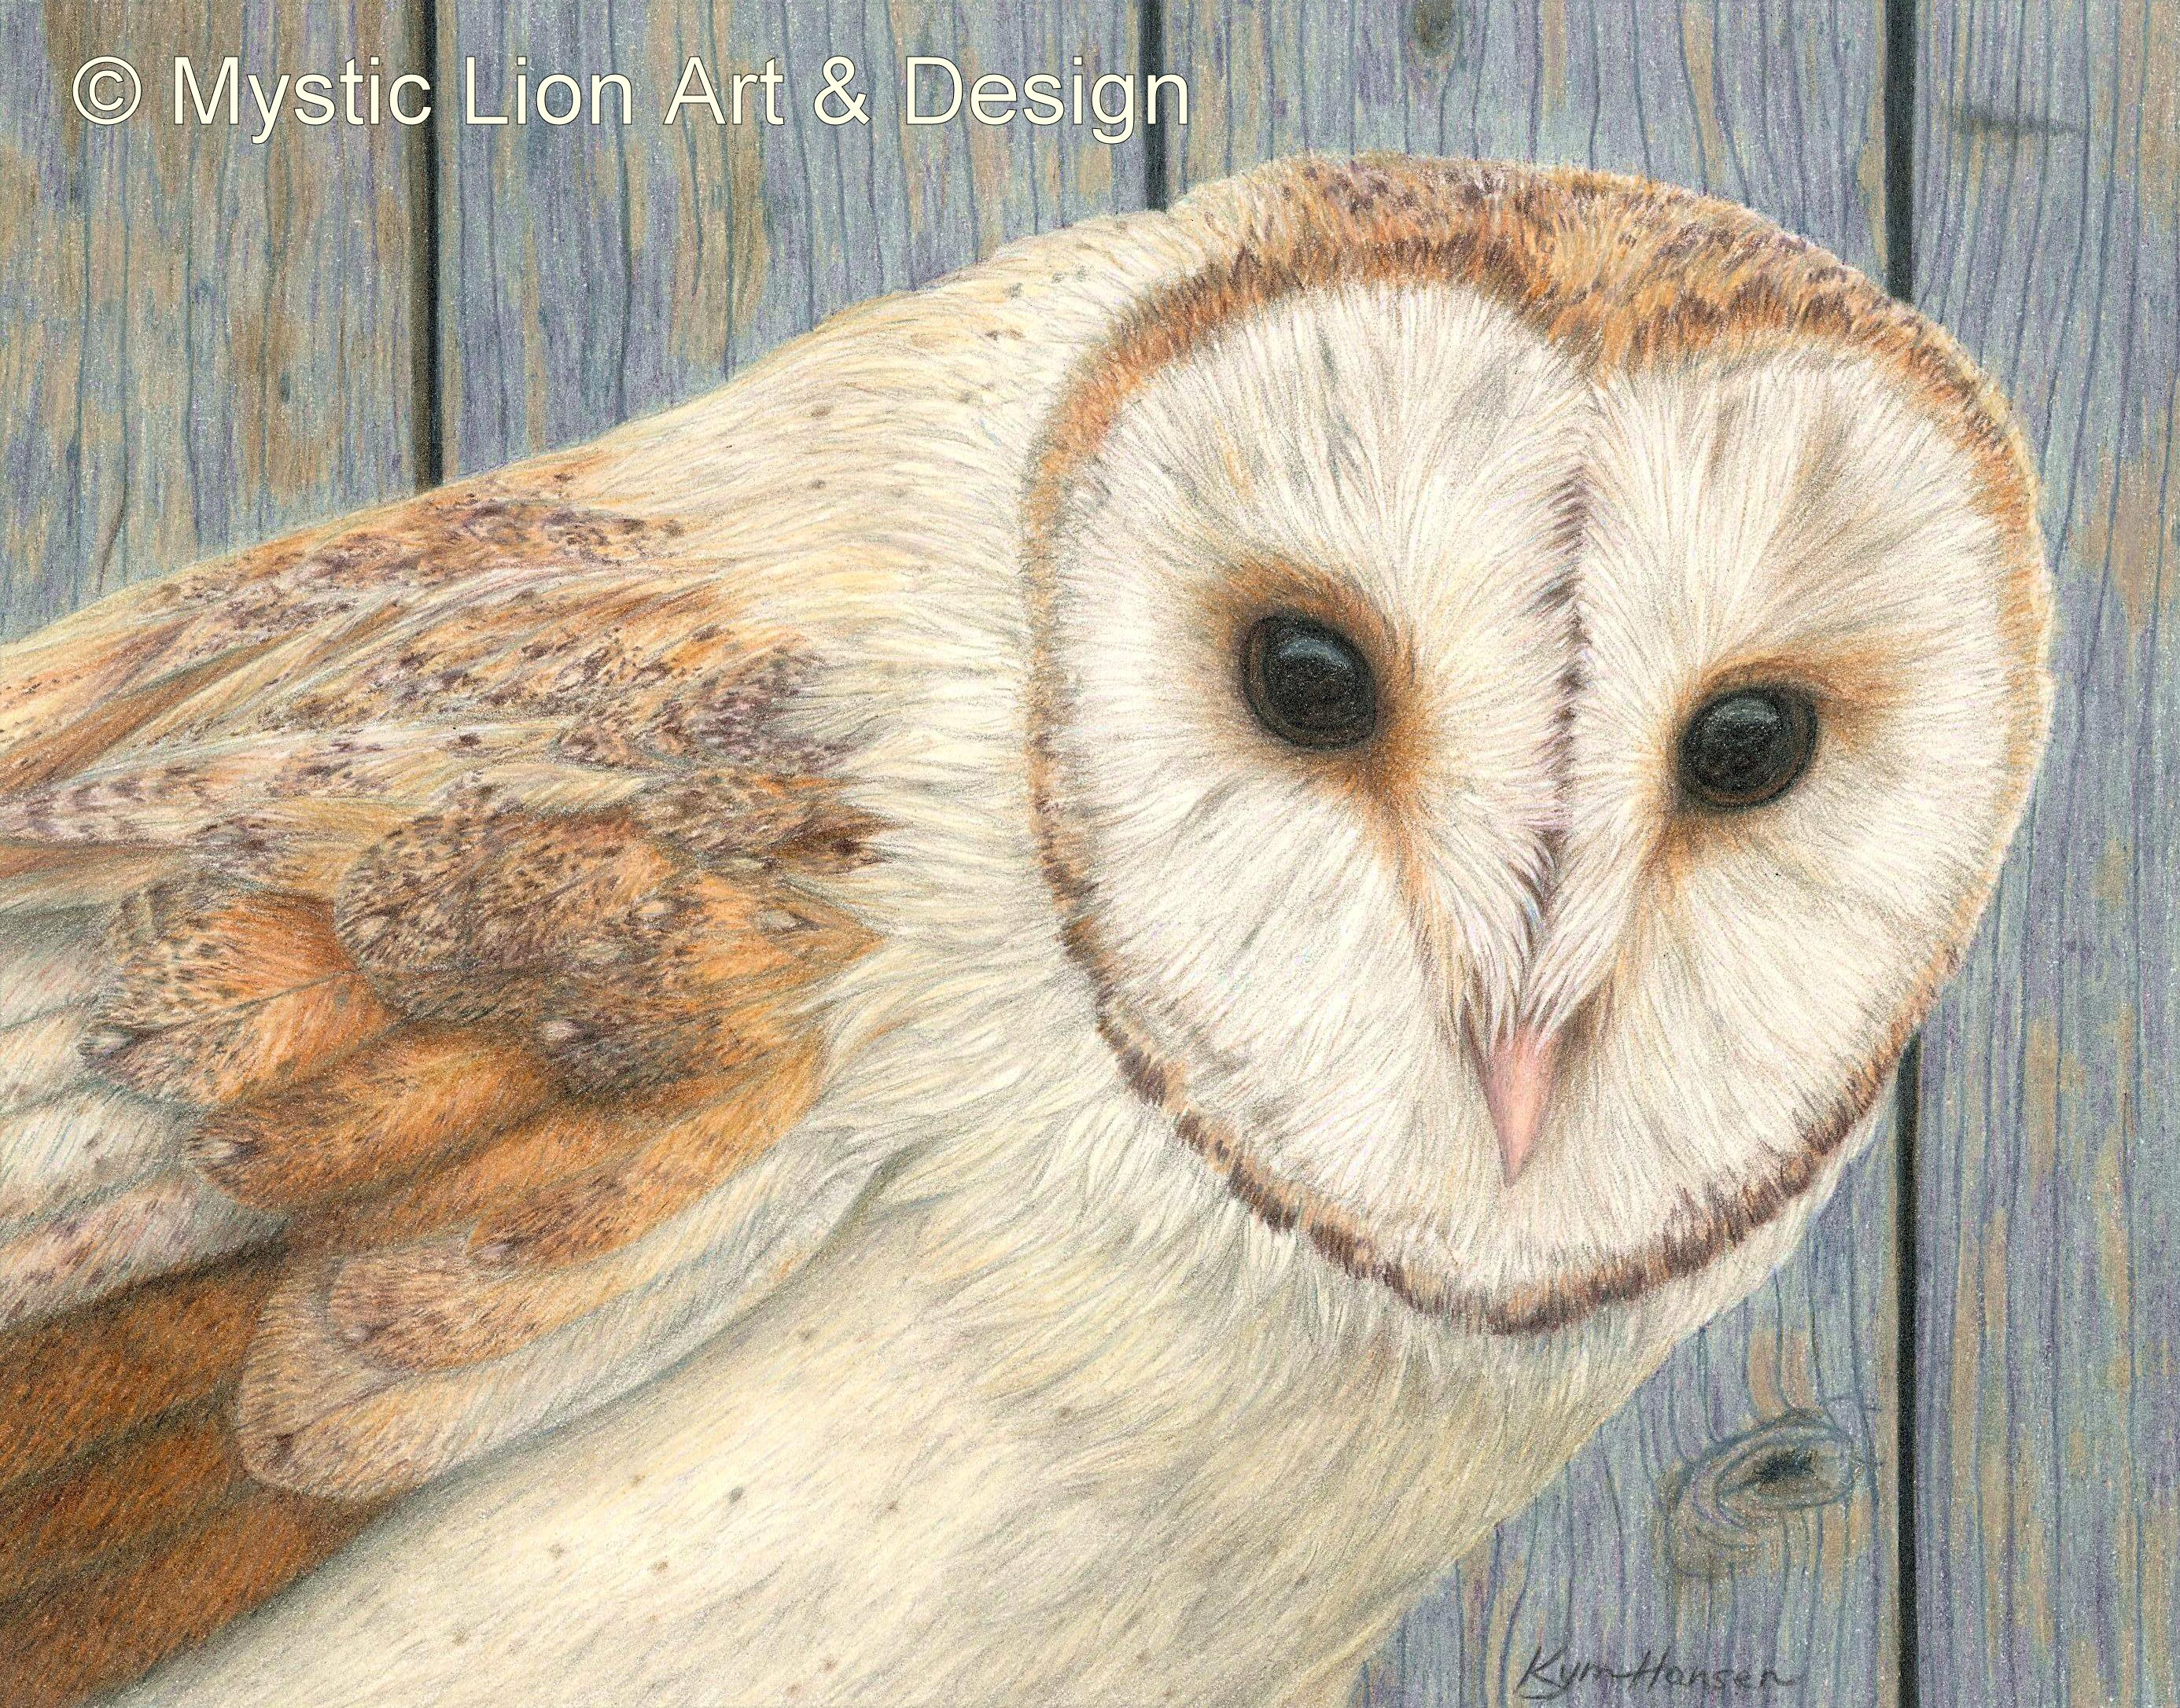 Being a Barn Owl